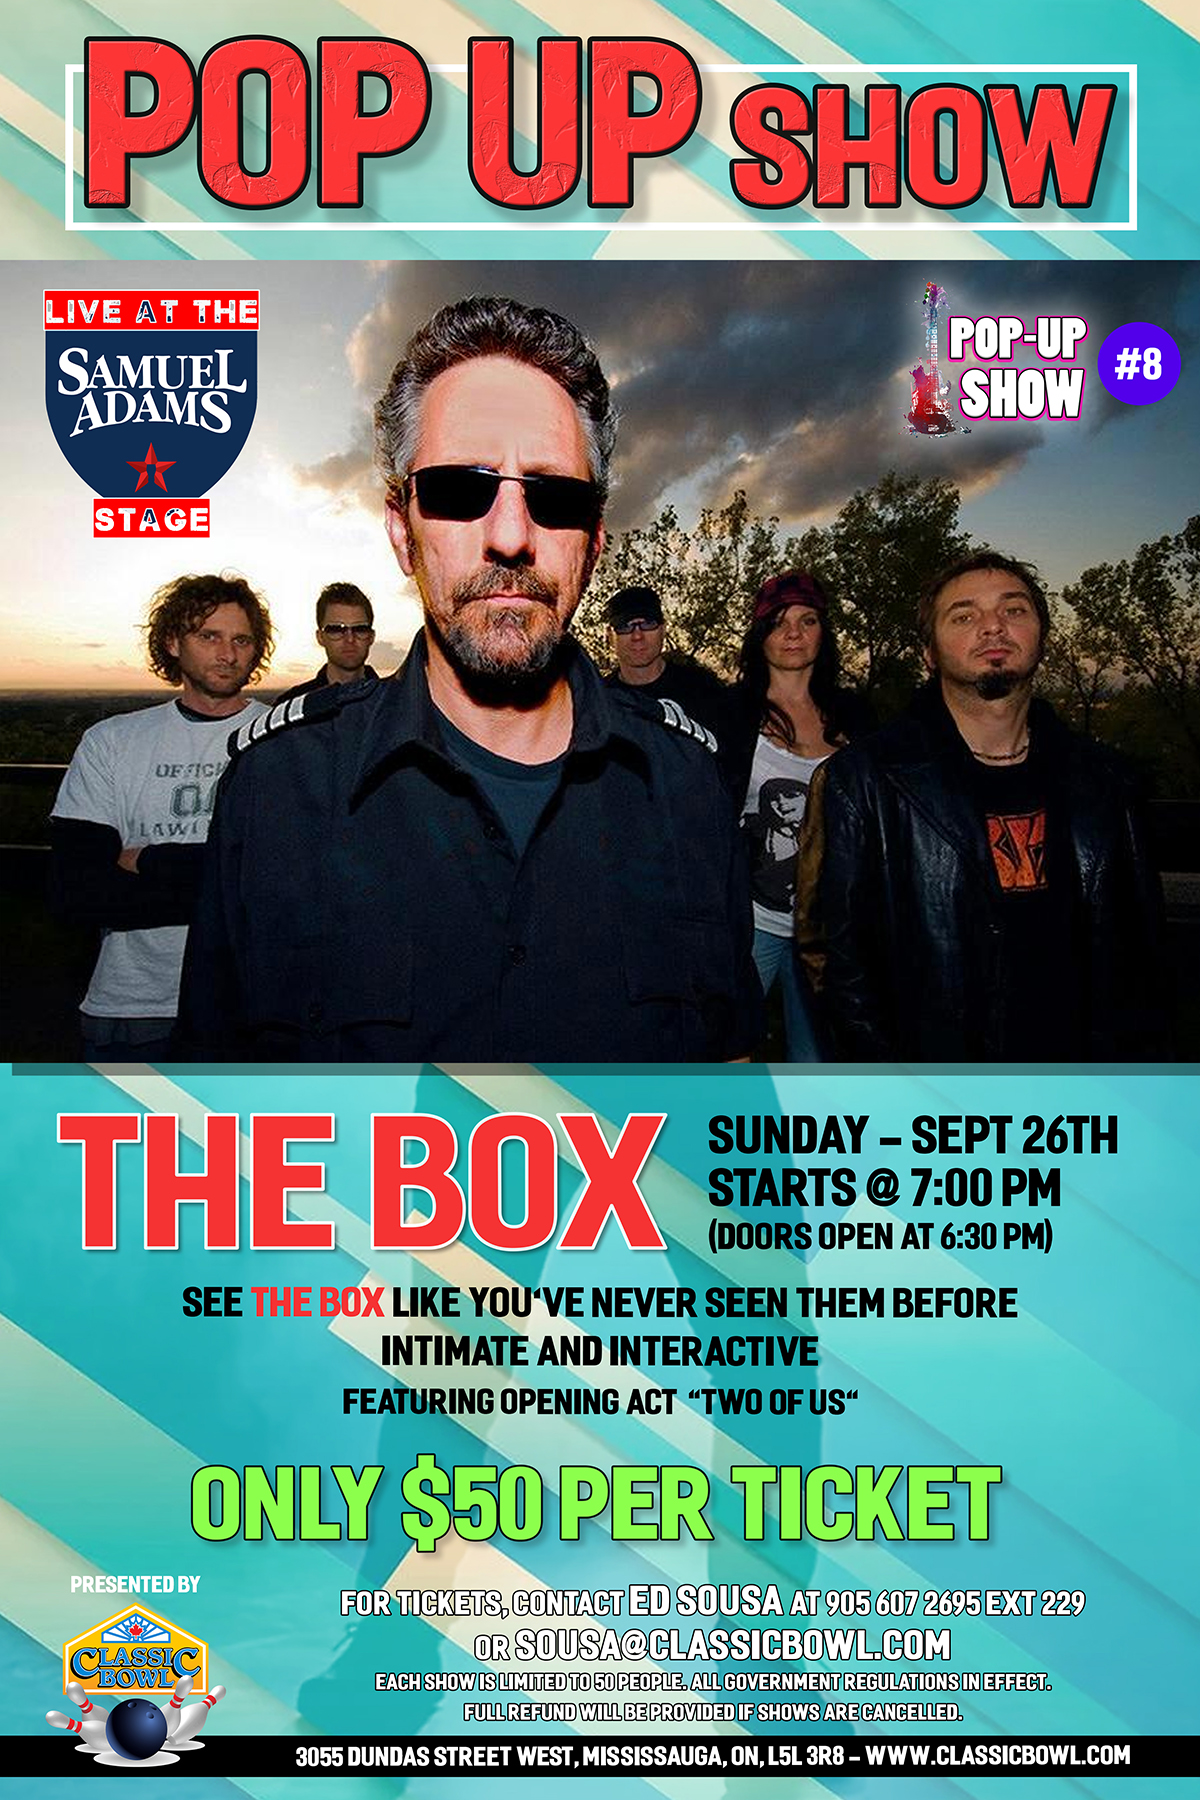 Pop Up Show #8 with The BOX, Sunday, Sept 26